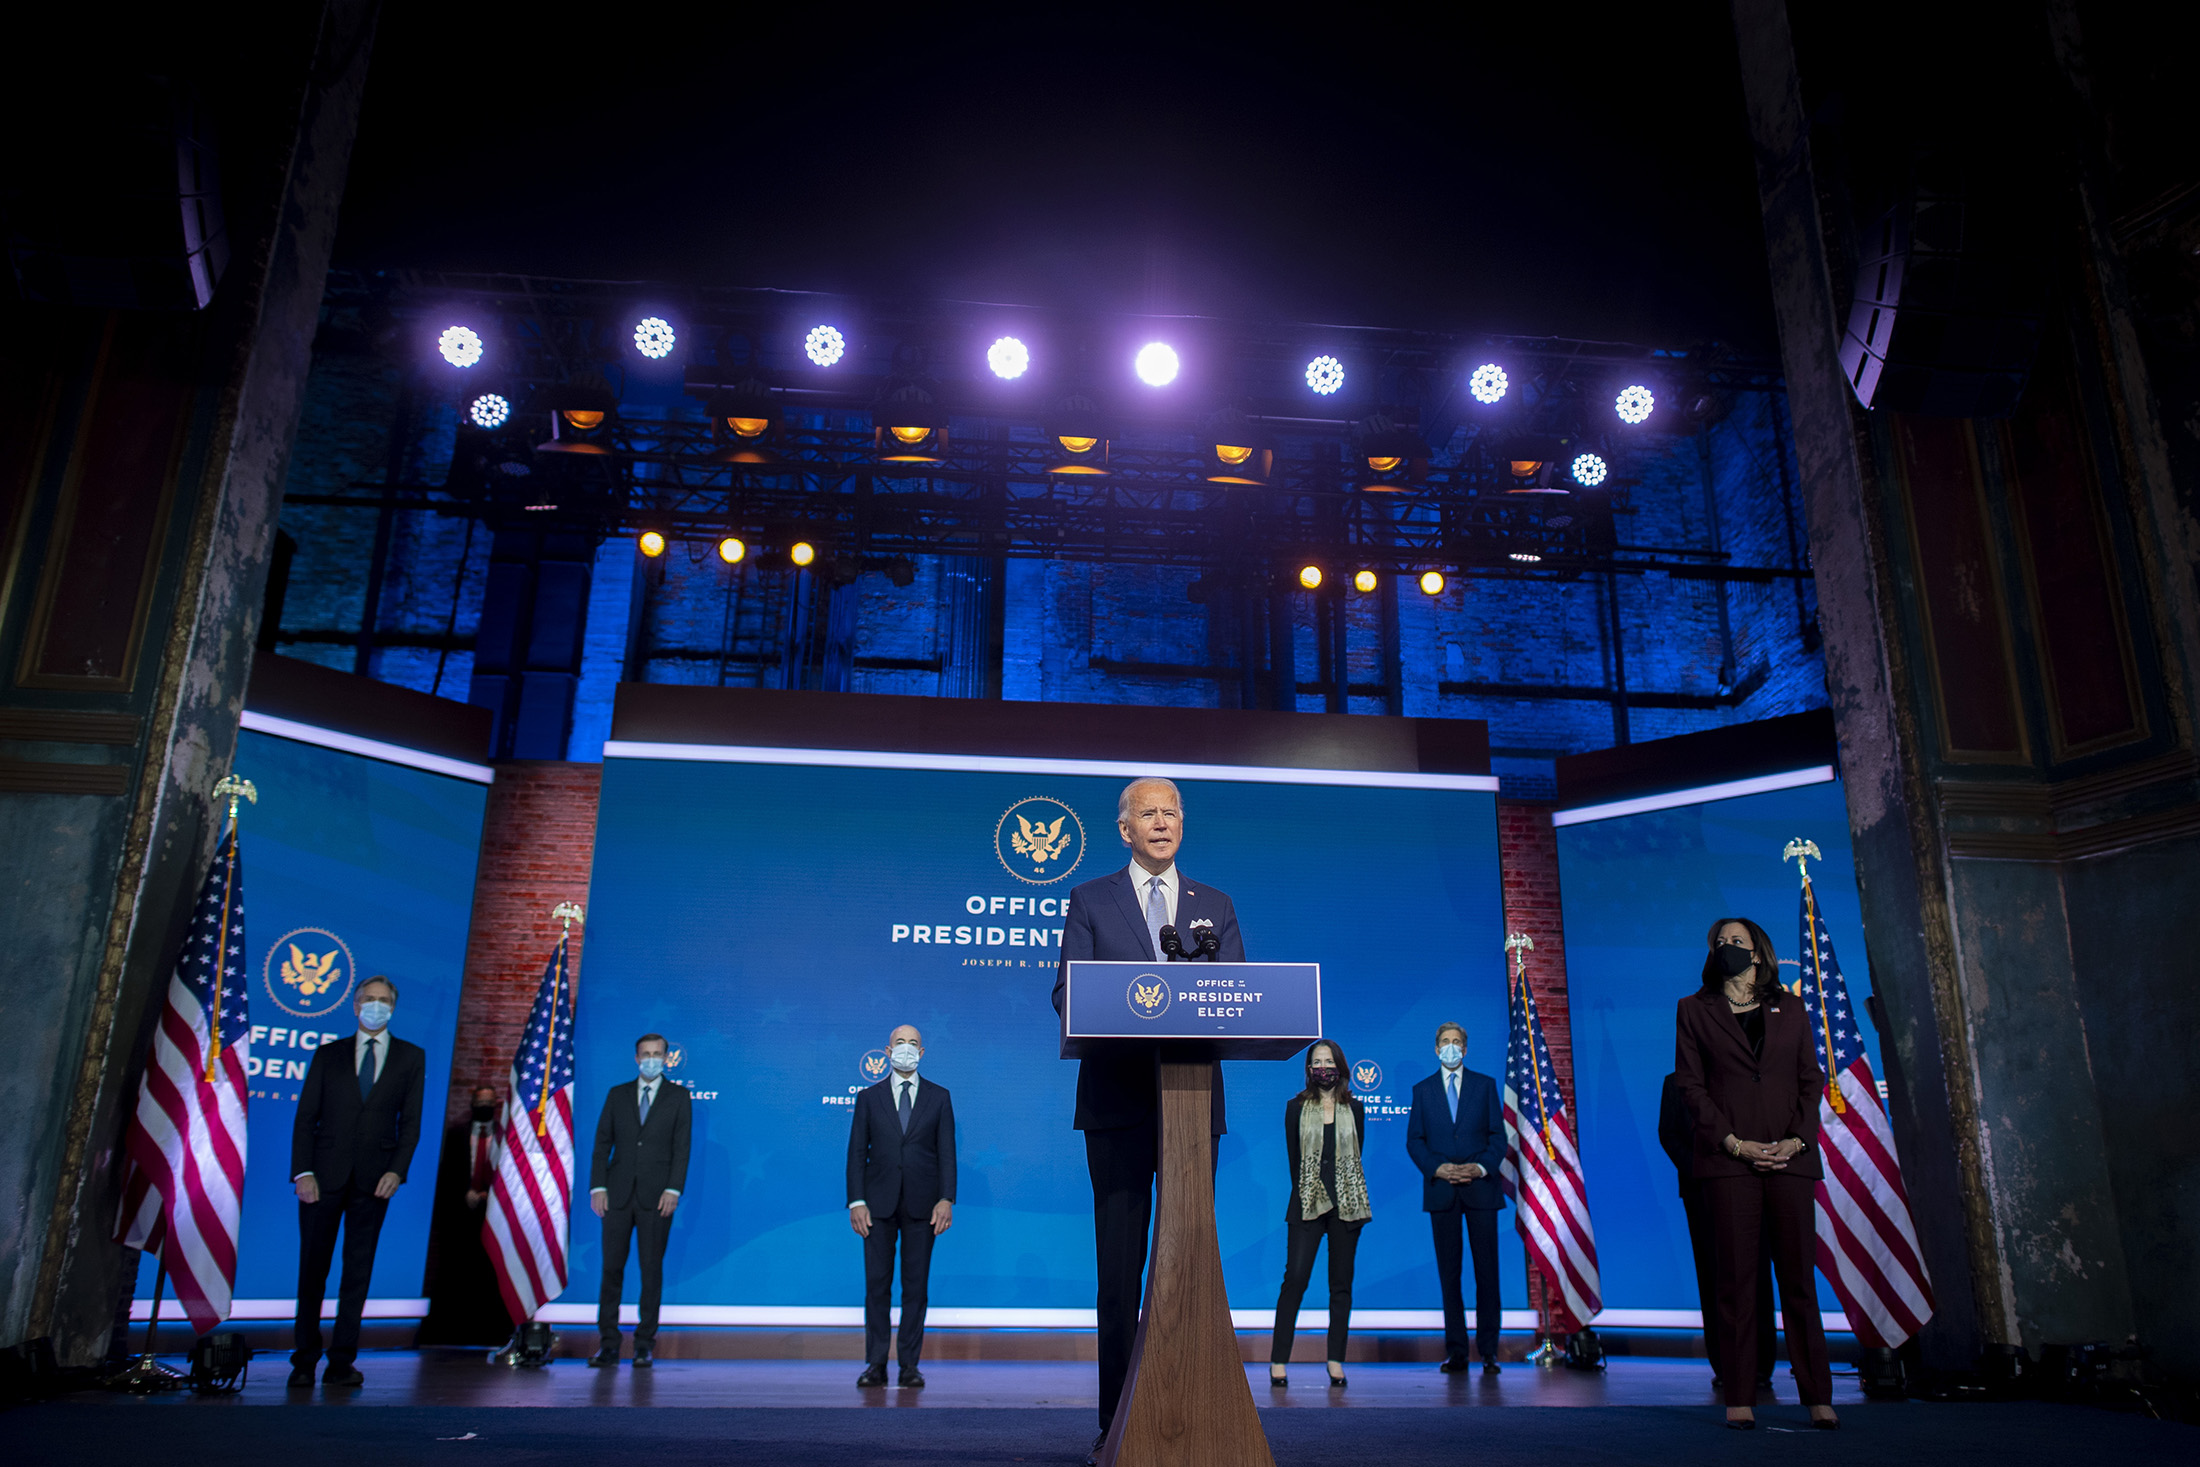 President-elect Joe Biden introduces key foreign policy and national security nominees and appointments at the Queen Theatre, on November 24, in Wilmington, Delaware.